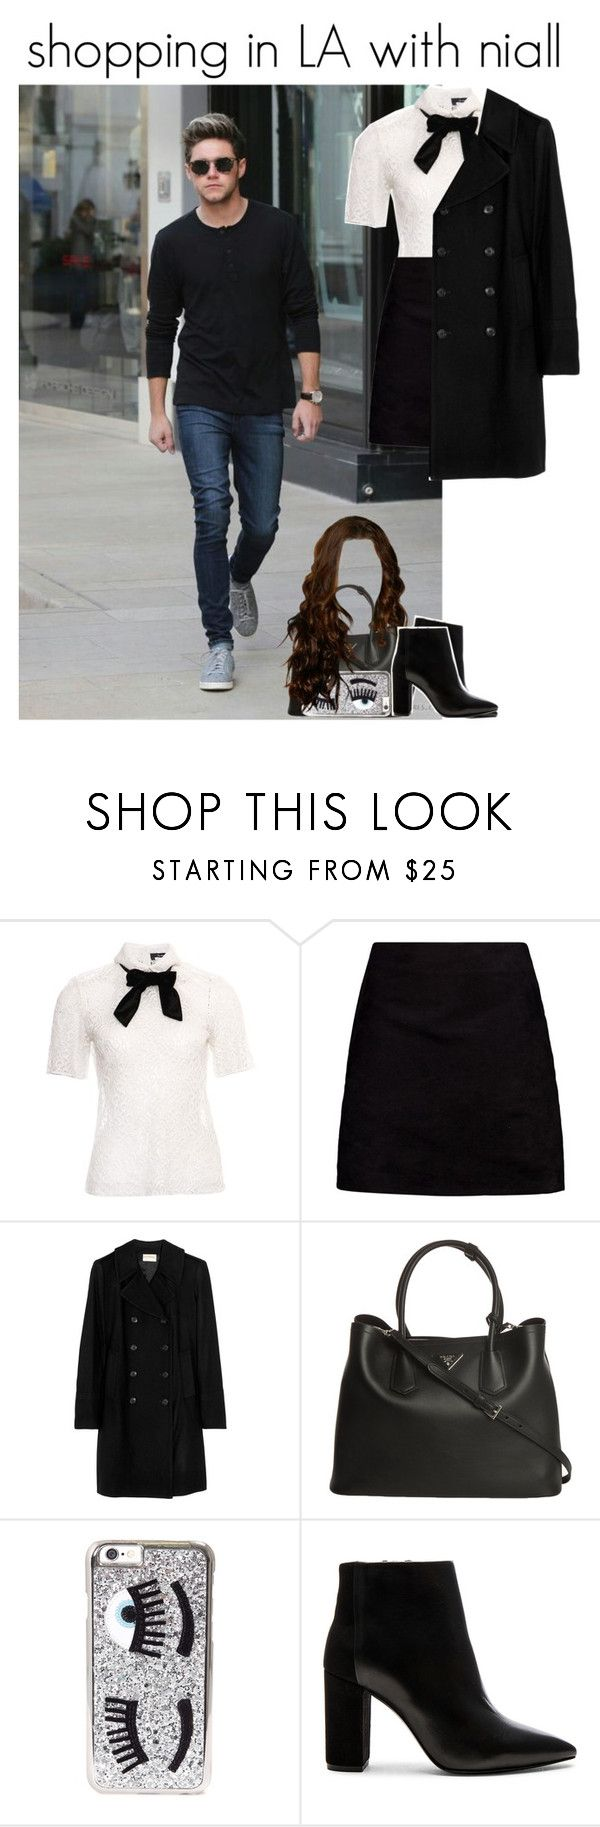 """""""shopping in LA with niall"""" by onlymyniallhoran ❤ liked on Polyvore featuring The Kooples, Boohoo, DKNY, Prada and Chiara Ferragni"""